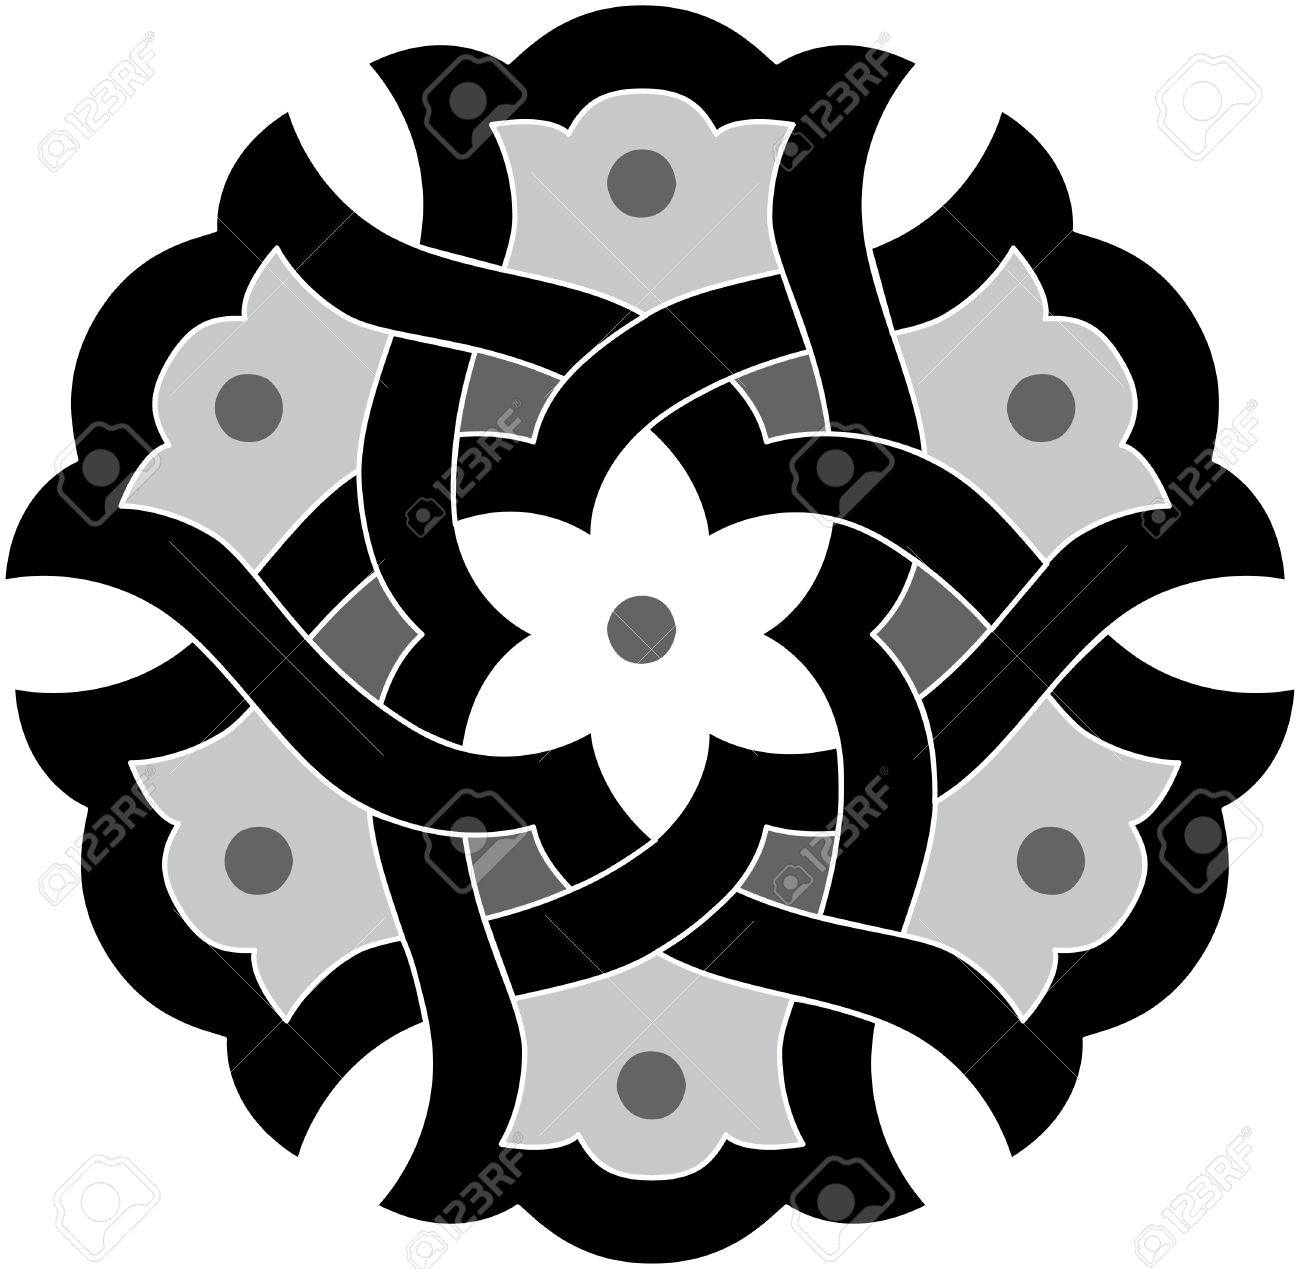 Arabesque design element, vector file, Grayscale Stock Vector - 24306612